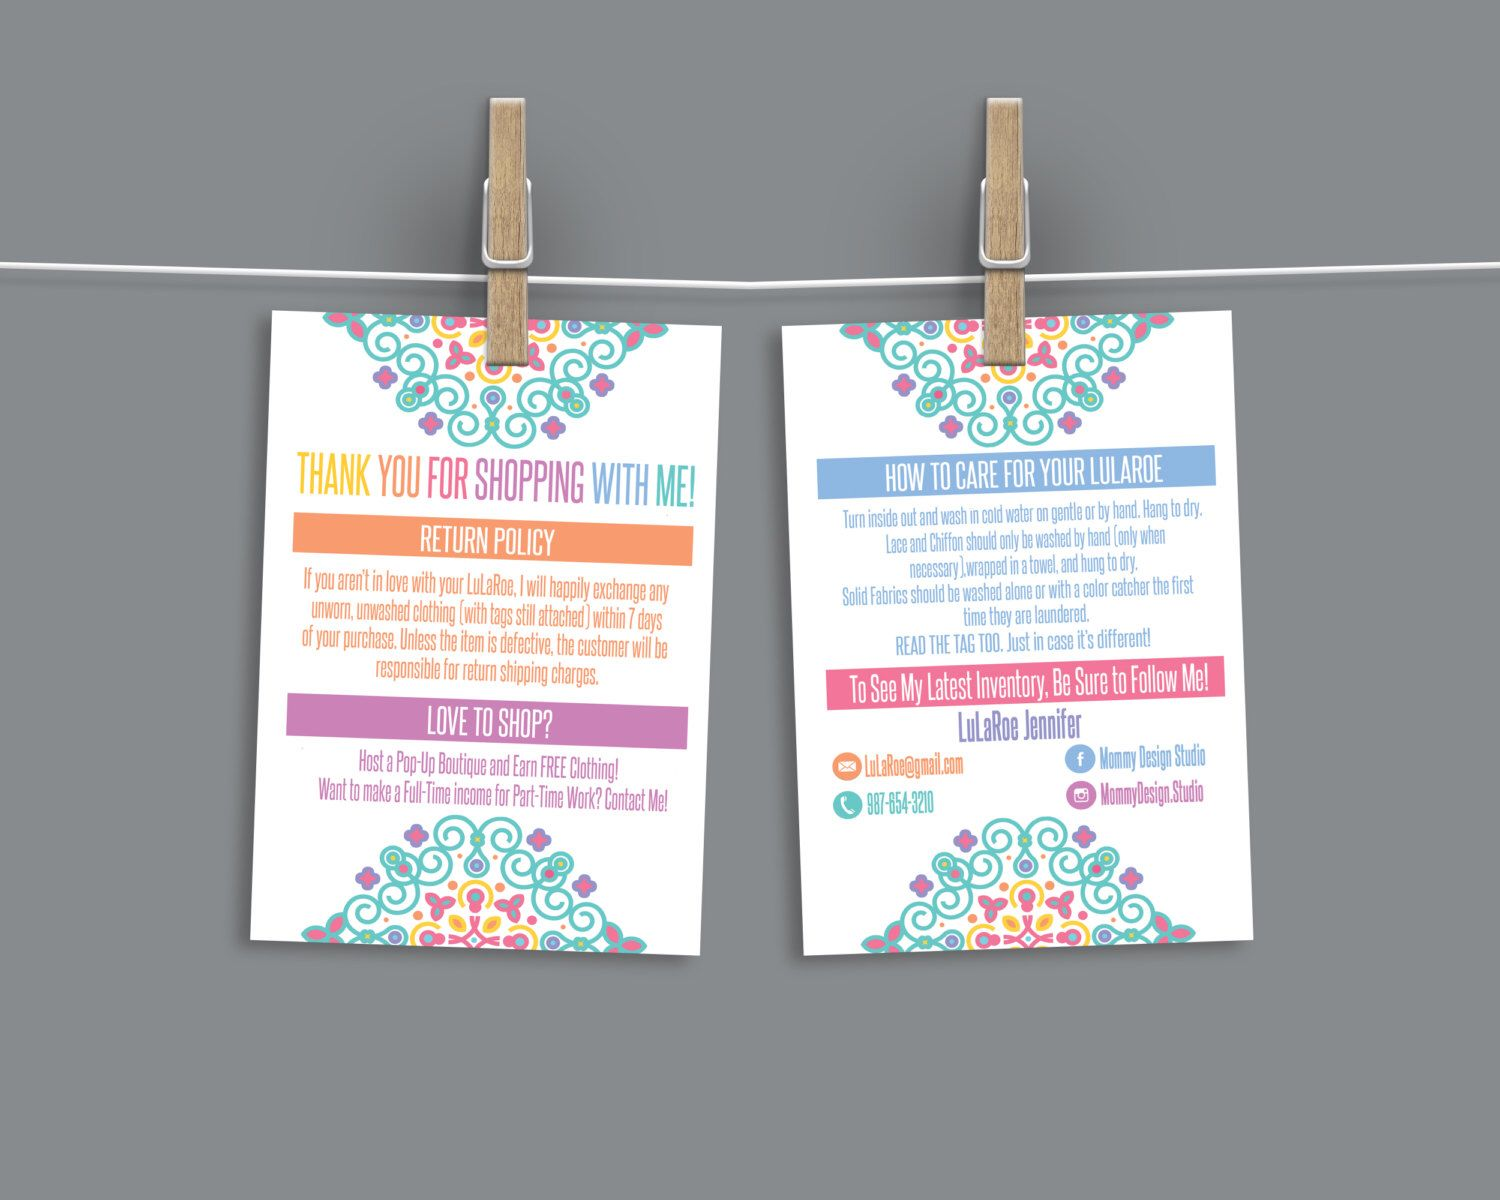 home office guide. BOHO Mandala Thank You/Care Cards   How To Care - Home Office Approved Branding Guide Fonts/Colors Fashion Retailer Return/Exchange PDF